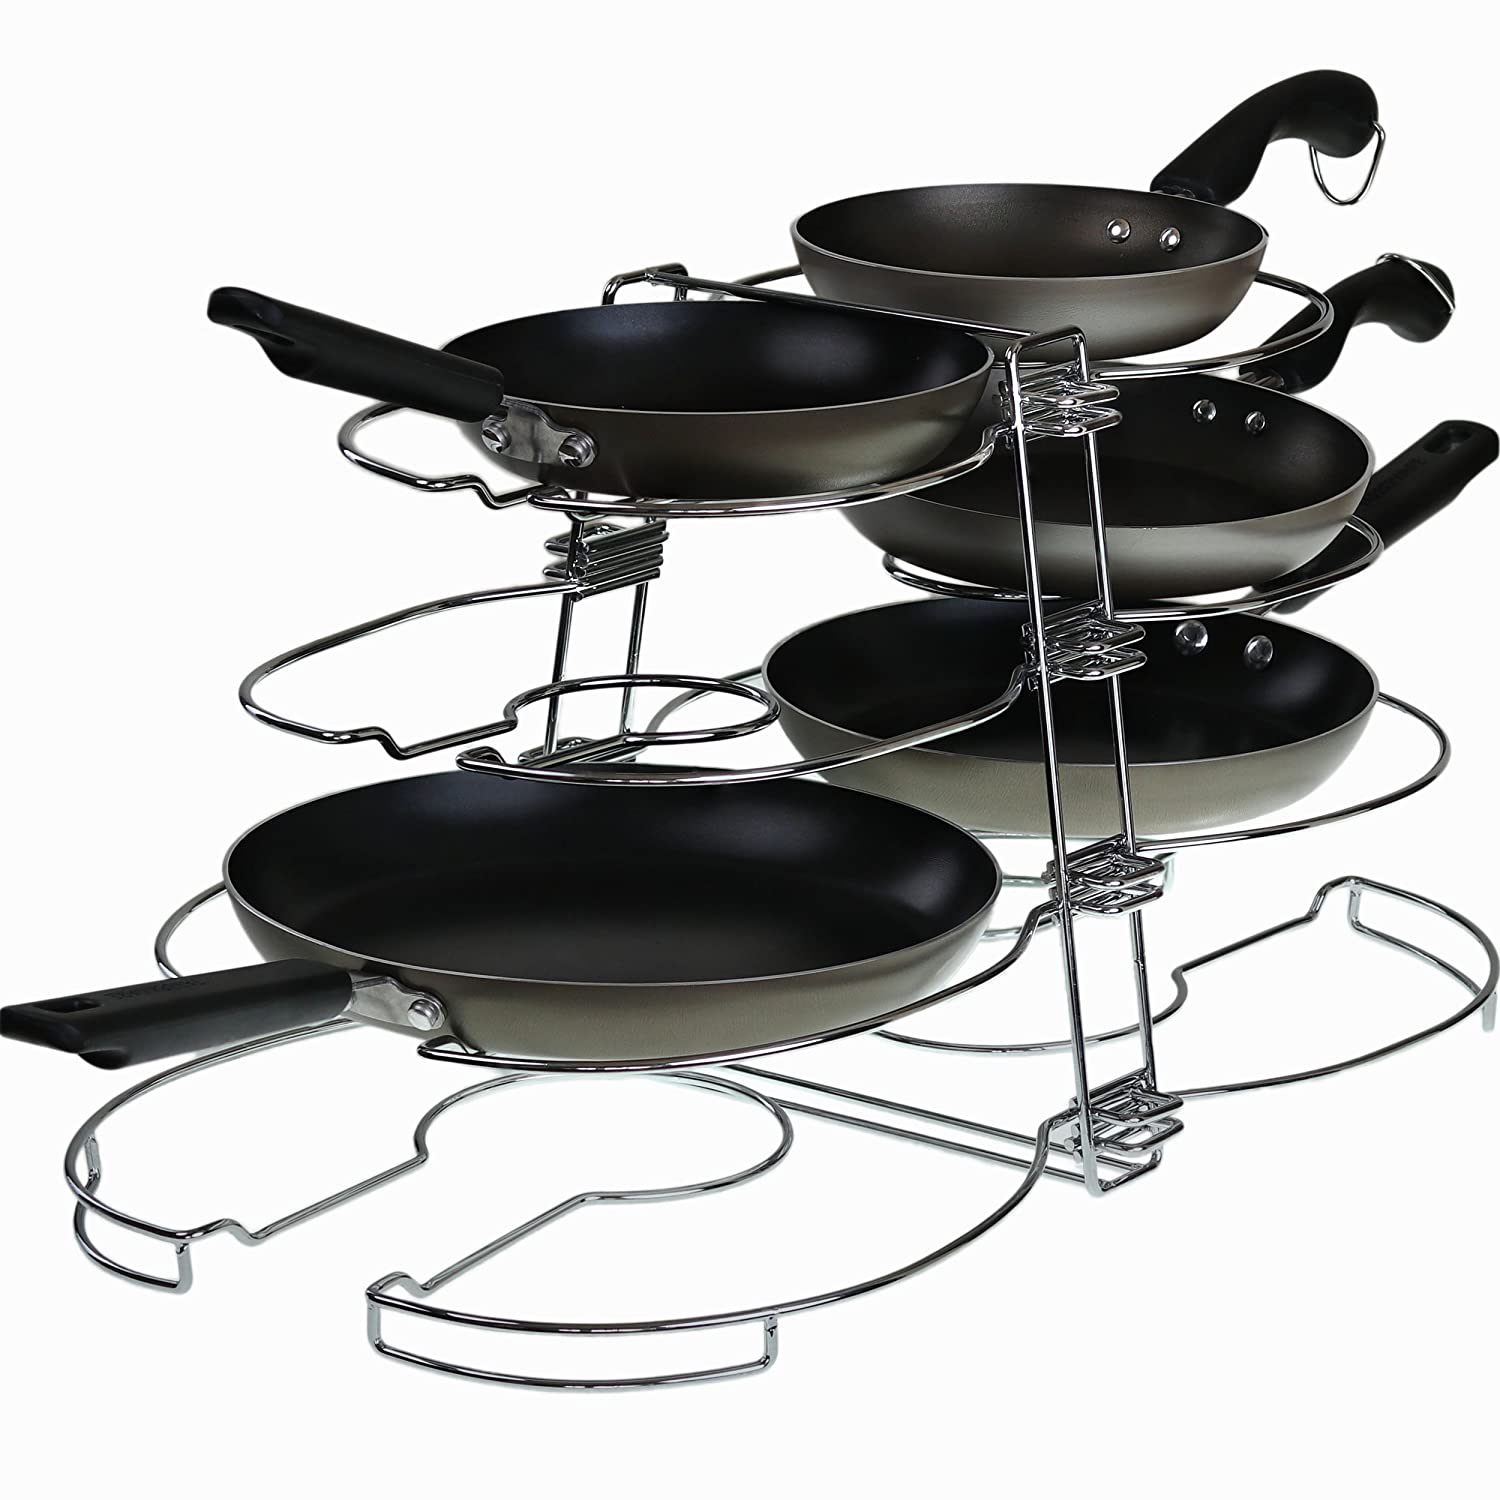 Introducing Spezia Double Pot & Lid Organizer, Holds up to 8 Pans & Lids with Unique Adjustable Racks Feature for an Improved Kitchen Organization. Amazing Cabinet, Drawer & Shelf Cookware Holder.